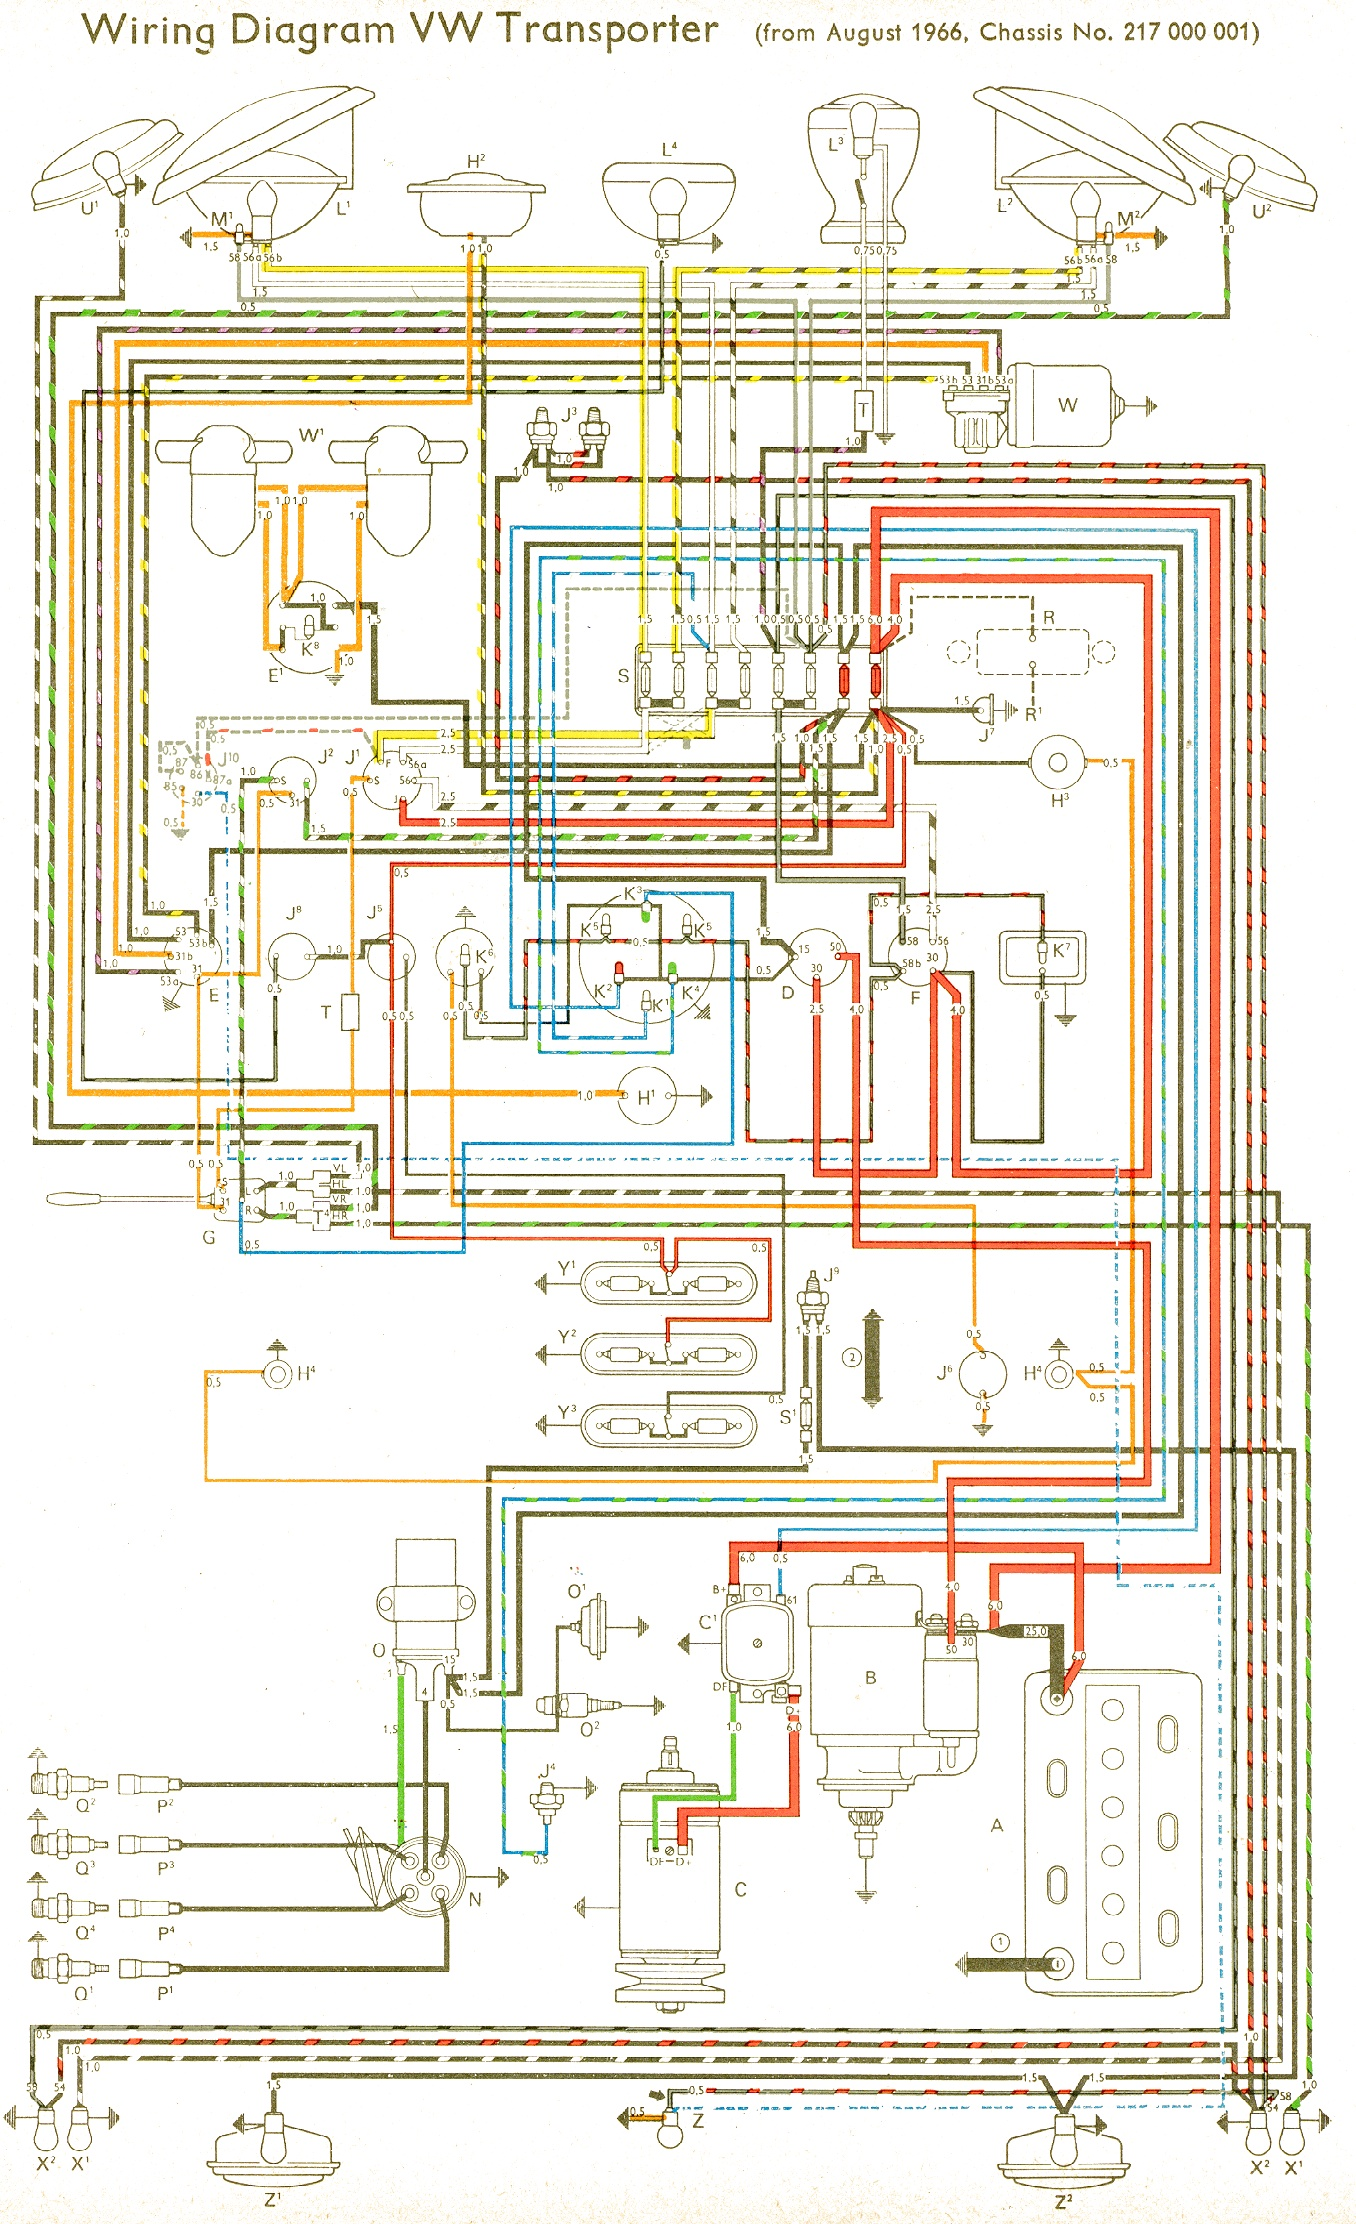 1966 vw wiring diagram wiring diagram1972 vw bus wiring diagram data wiring diagramvintagebus com vw bus (and other) wiring